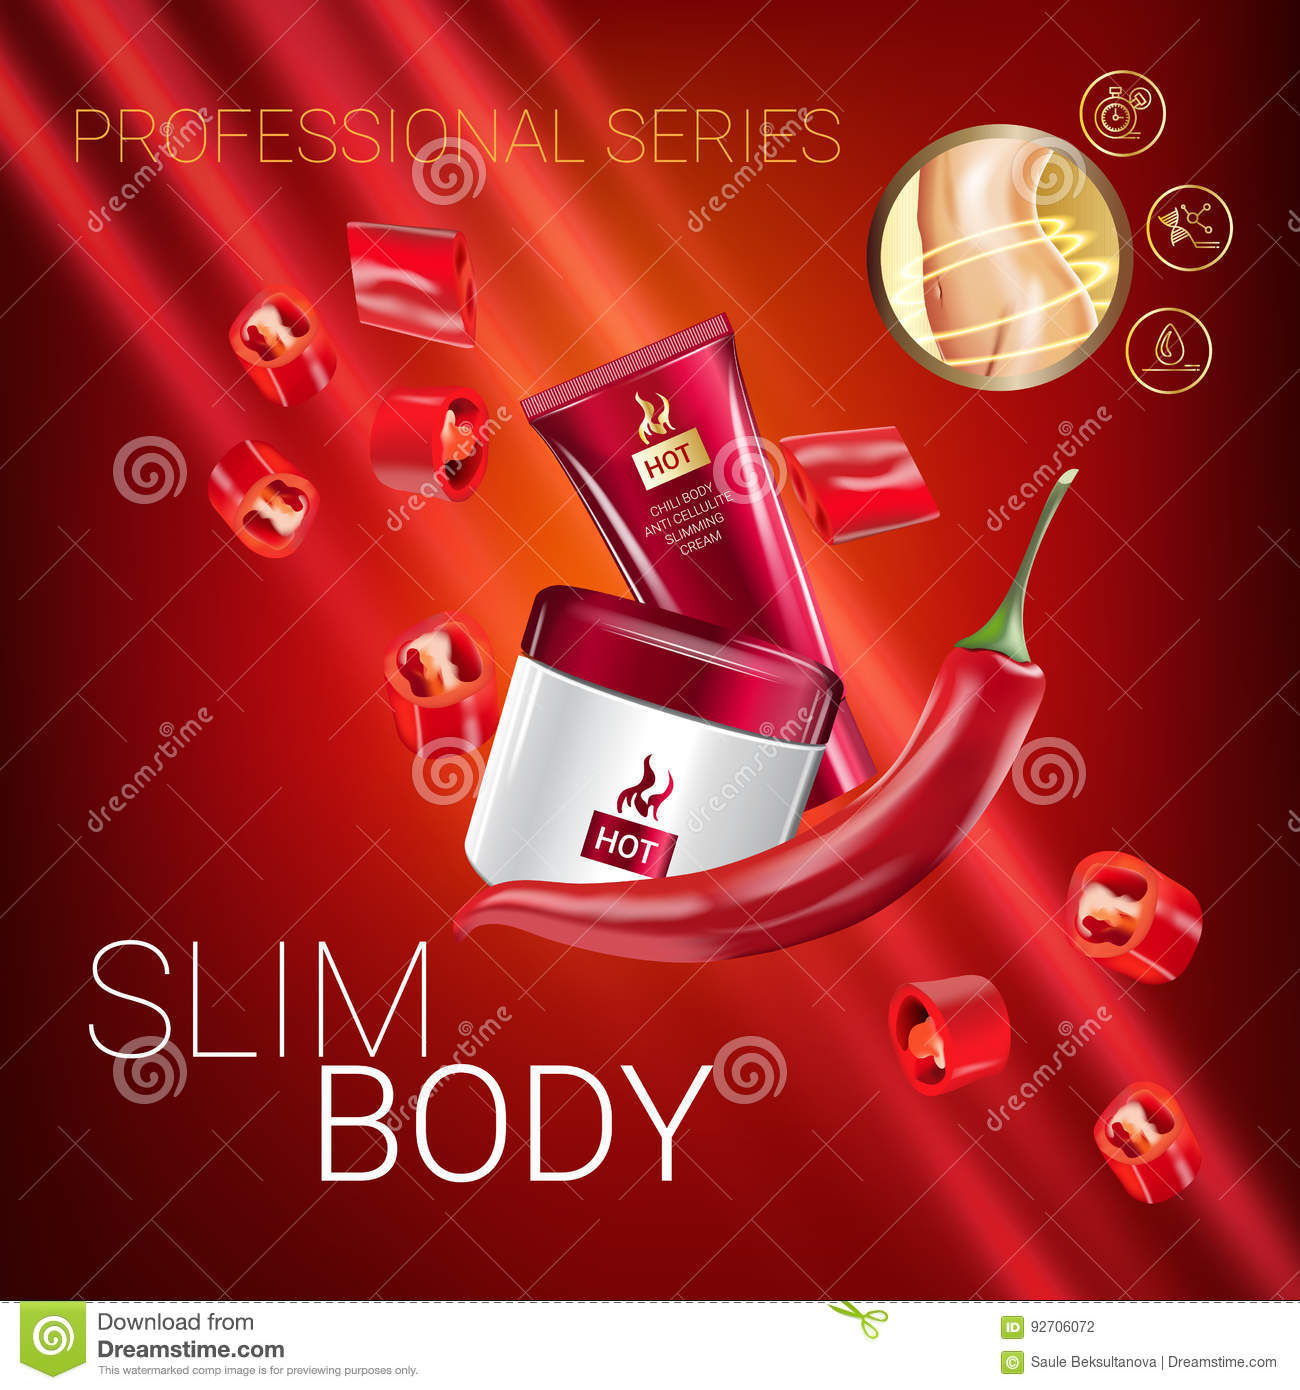 Skin Care Ads: Body Skin Care Series Ads. Vector Illustration With Chili